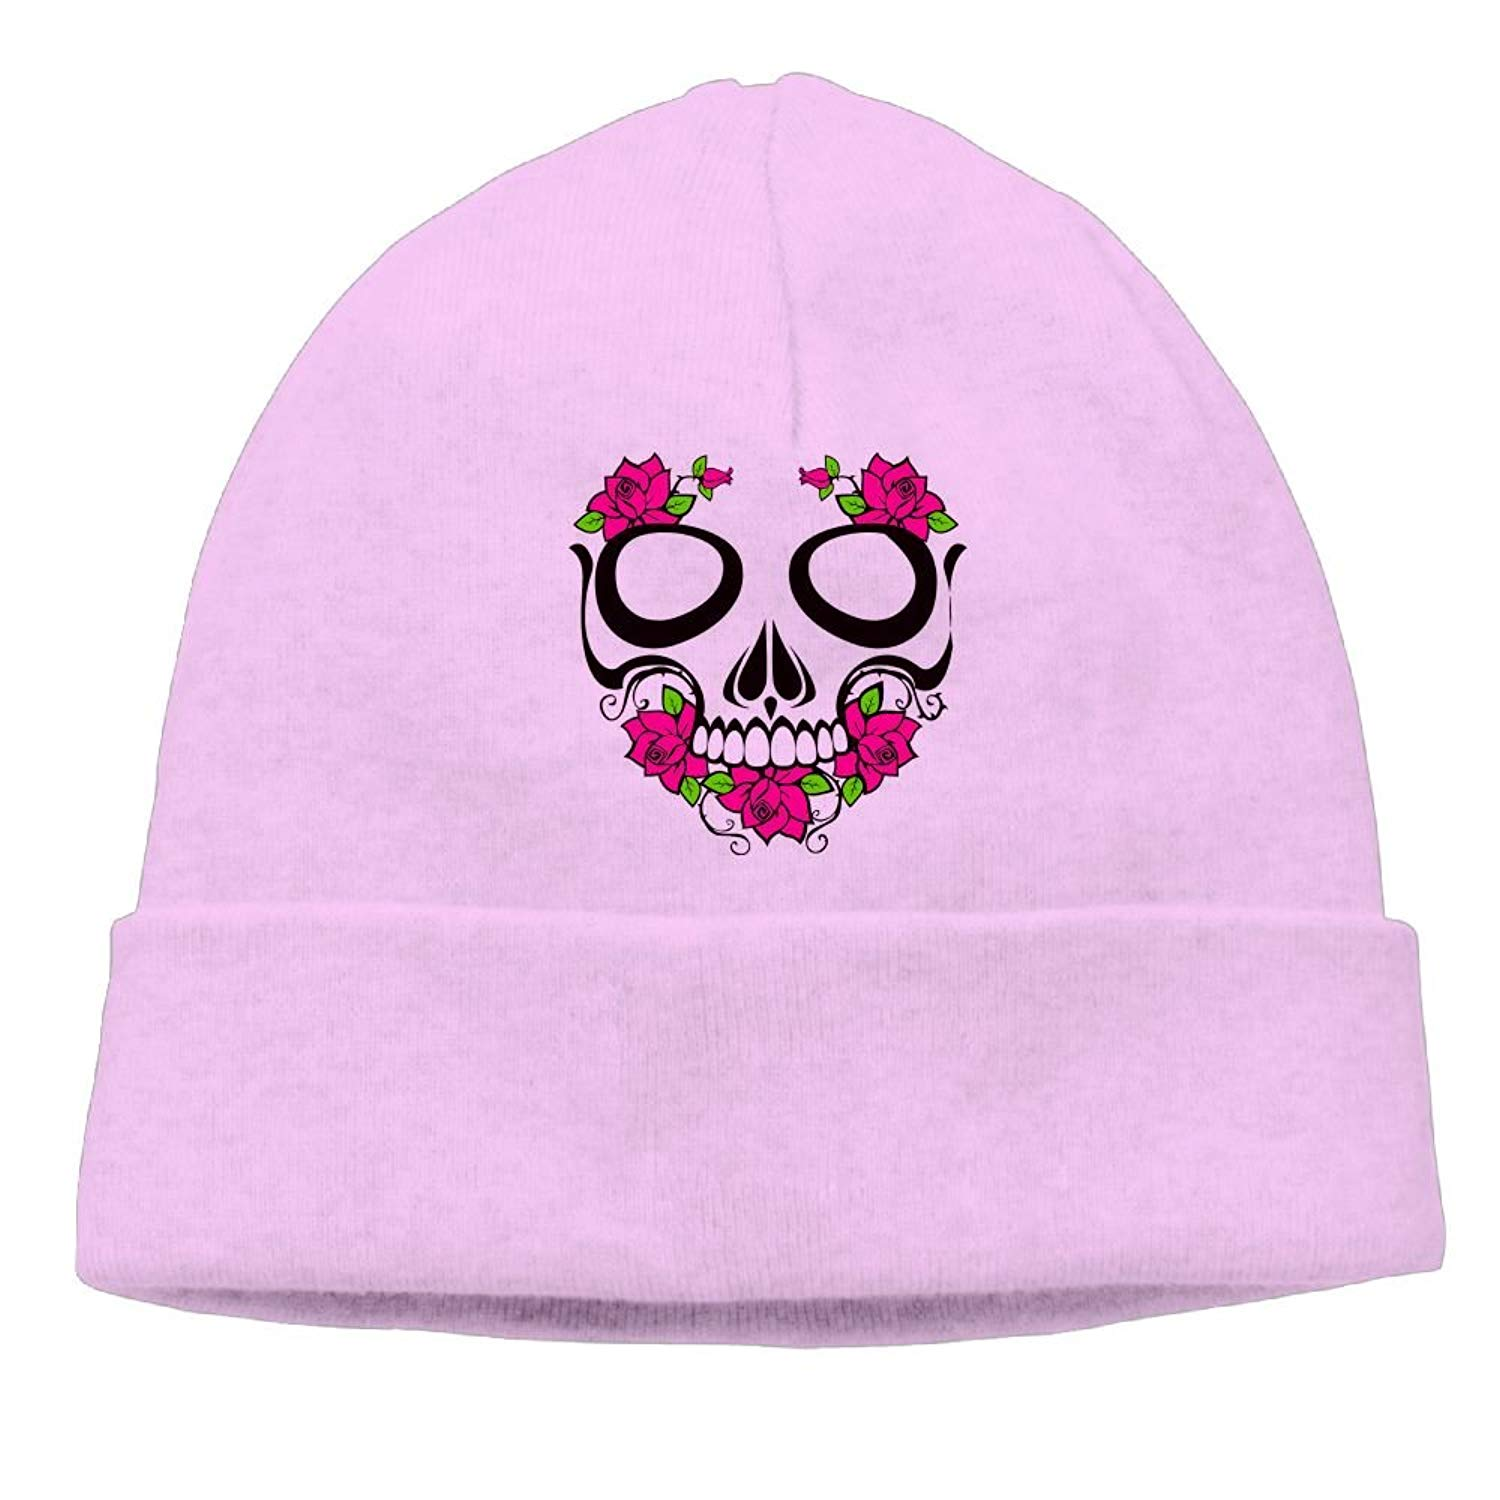 880b5644ad7 Get Quotations · Ddgf1 Cap Flower Pink Sugar Skull Men Warm Knit Beanie Hat  Skull Cap